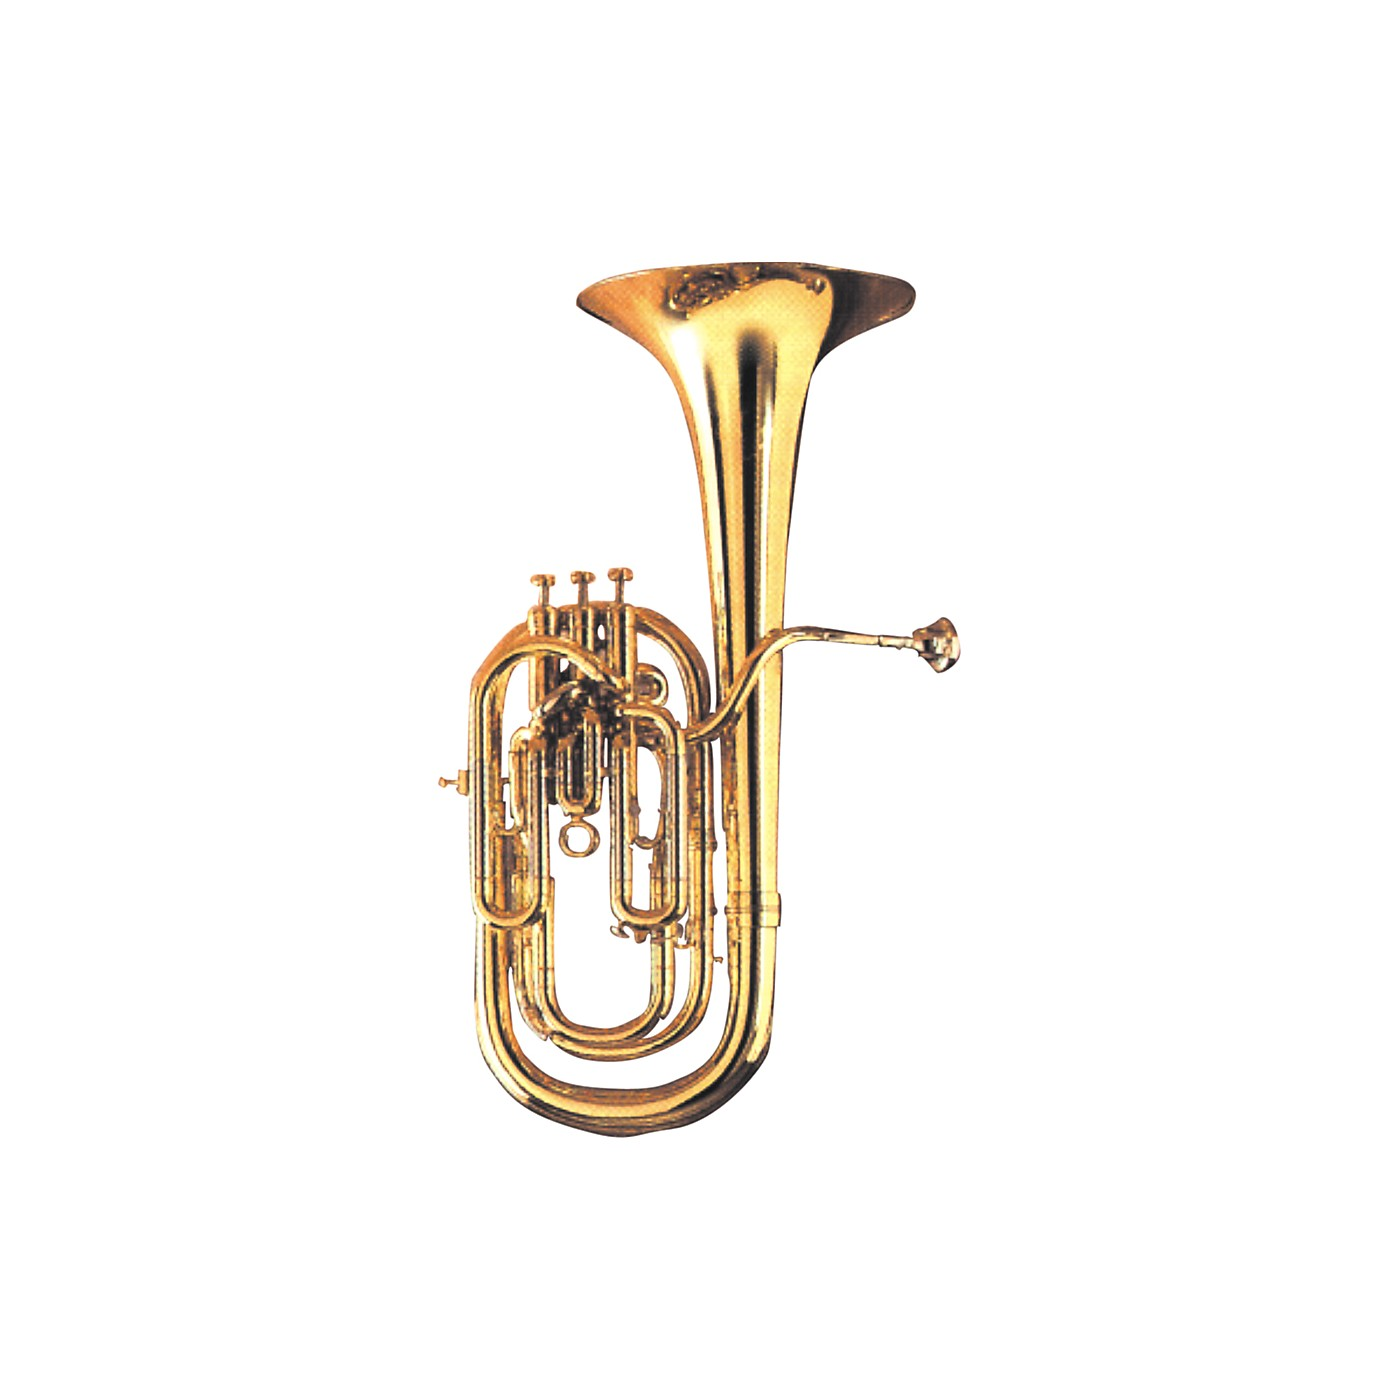 Besson BE955 Sovereign Series Bb Baritone Horn thumbnail